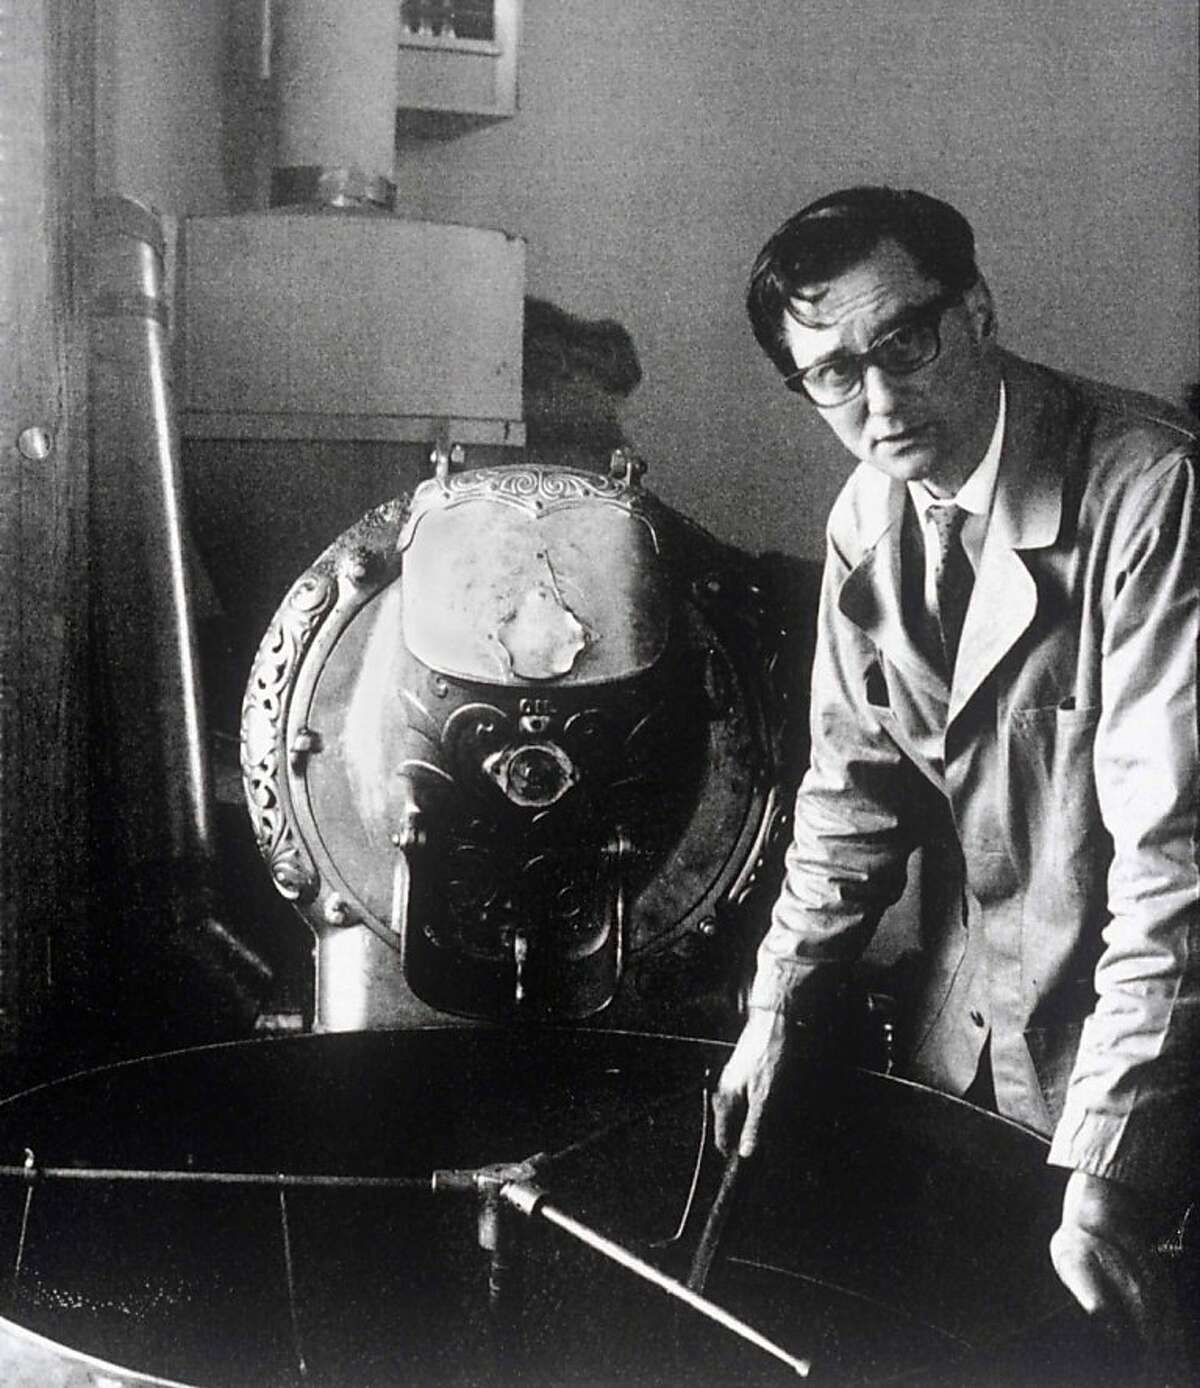 Alfred Peet with a coffee roaster in the late 1960s at the original Peet's store at Vine and Walnut in Berkeley.